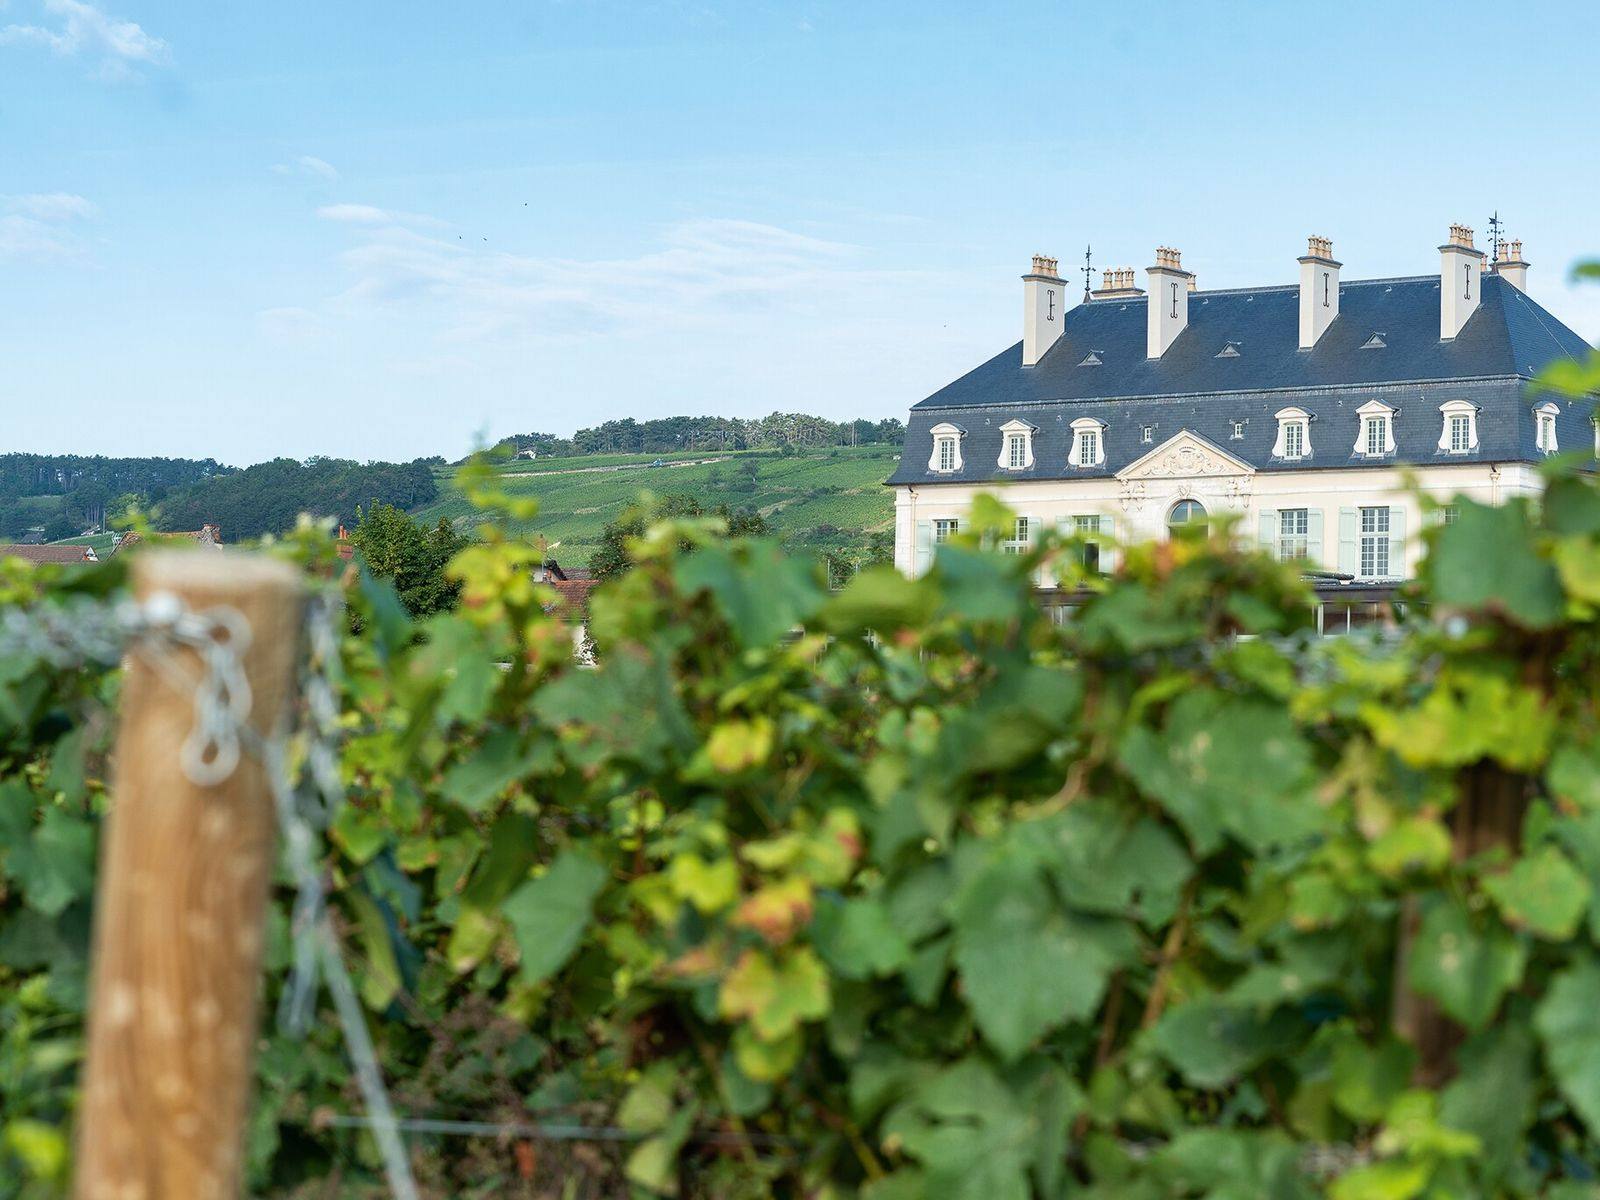 The vineyard at Château de Pommard, bought by a US entrepreneur in 2014 and set to ...